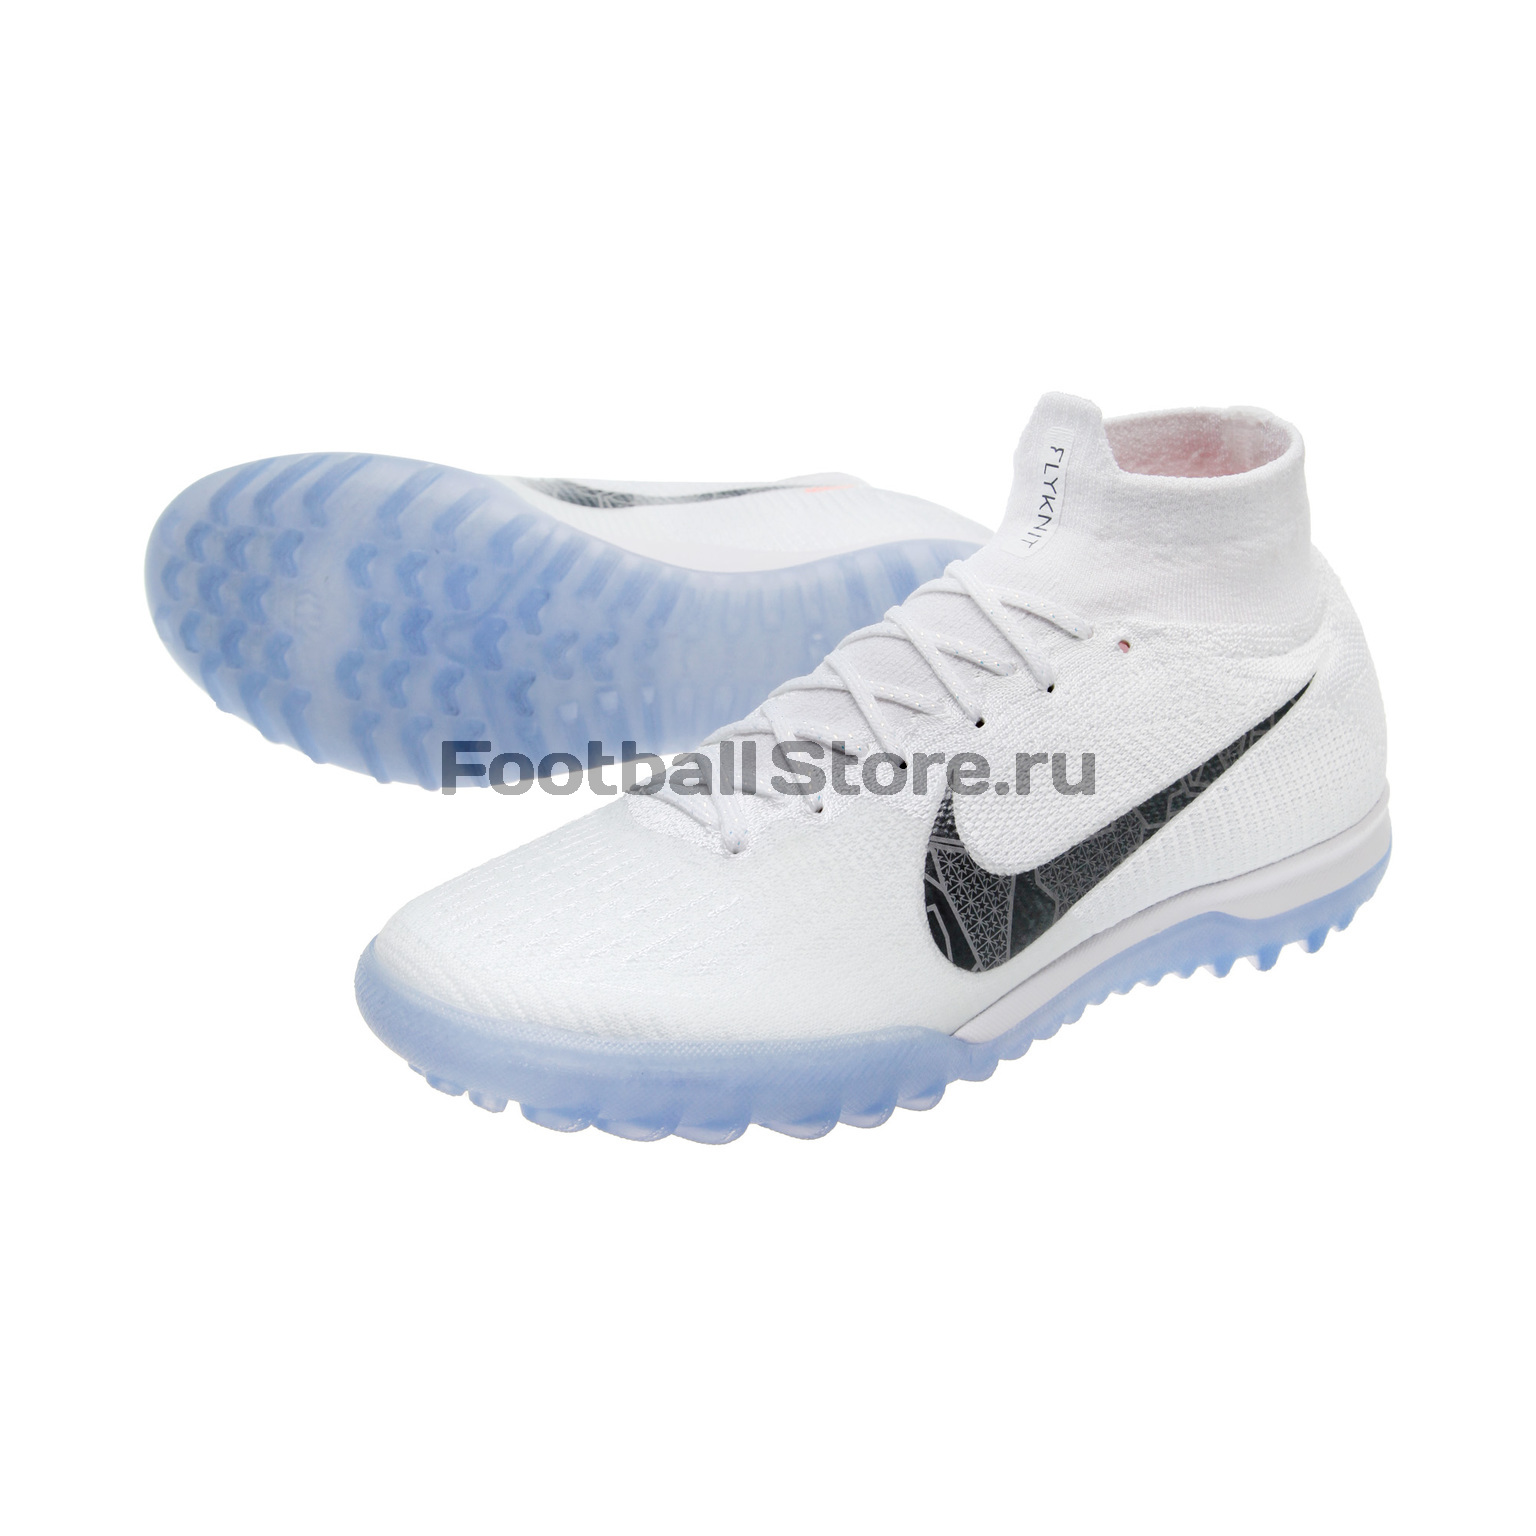 Шиповки Nike Superfly 6 Elite TF AH7374-107 бутсы nike superfly 6 elite sg pro ac ah7366 060